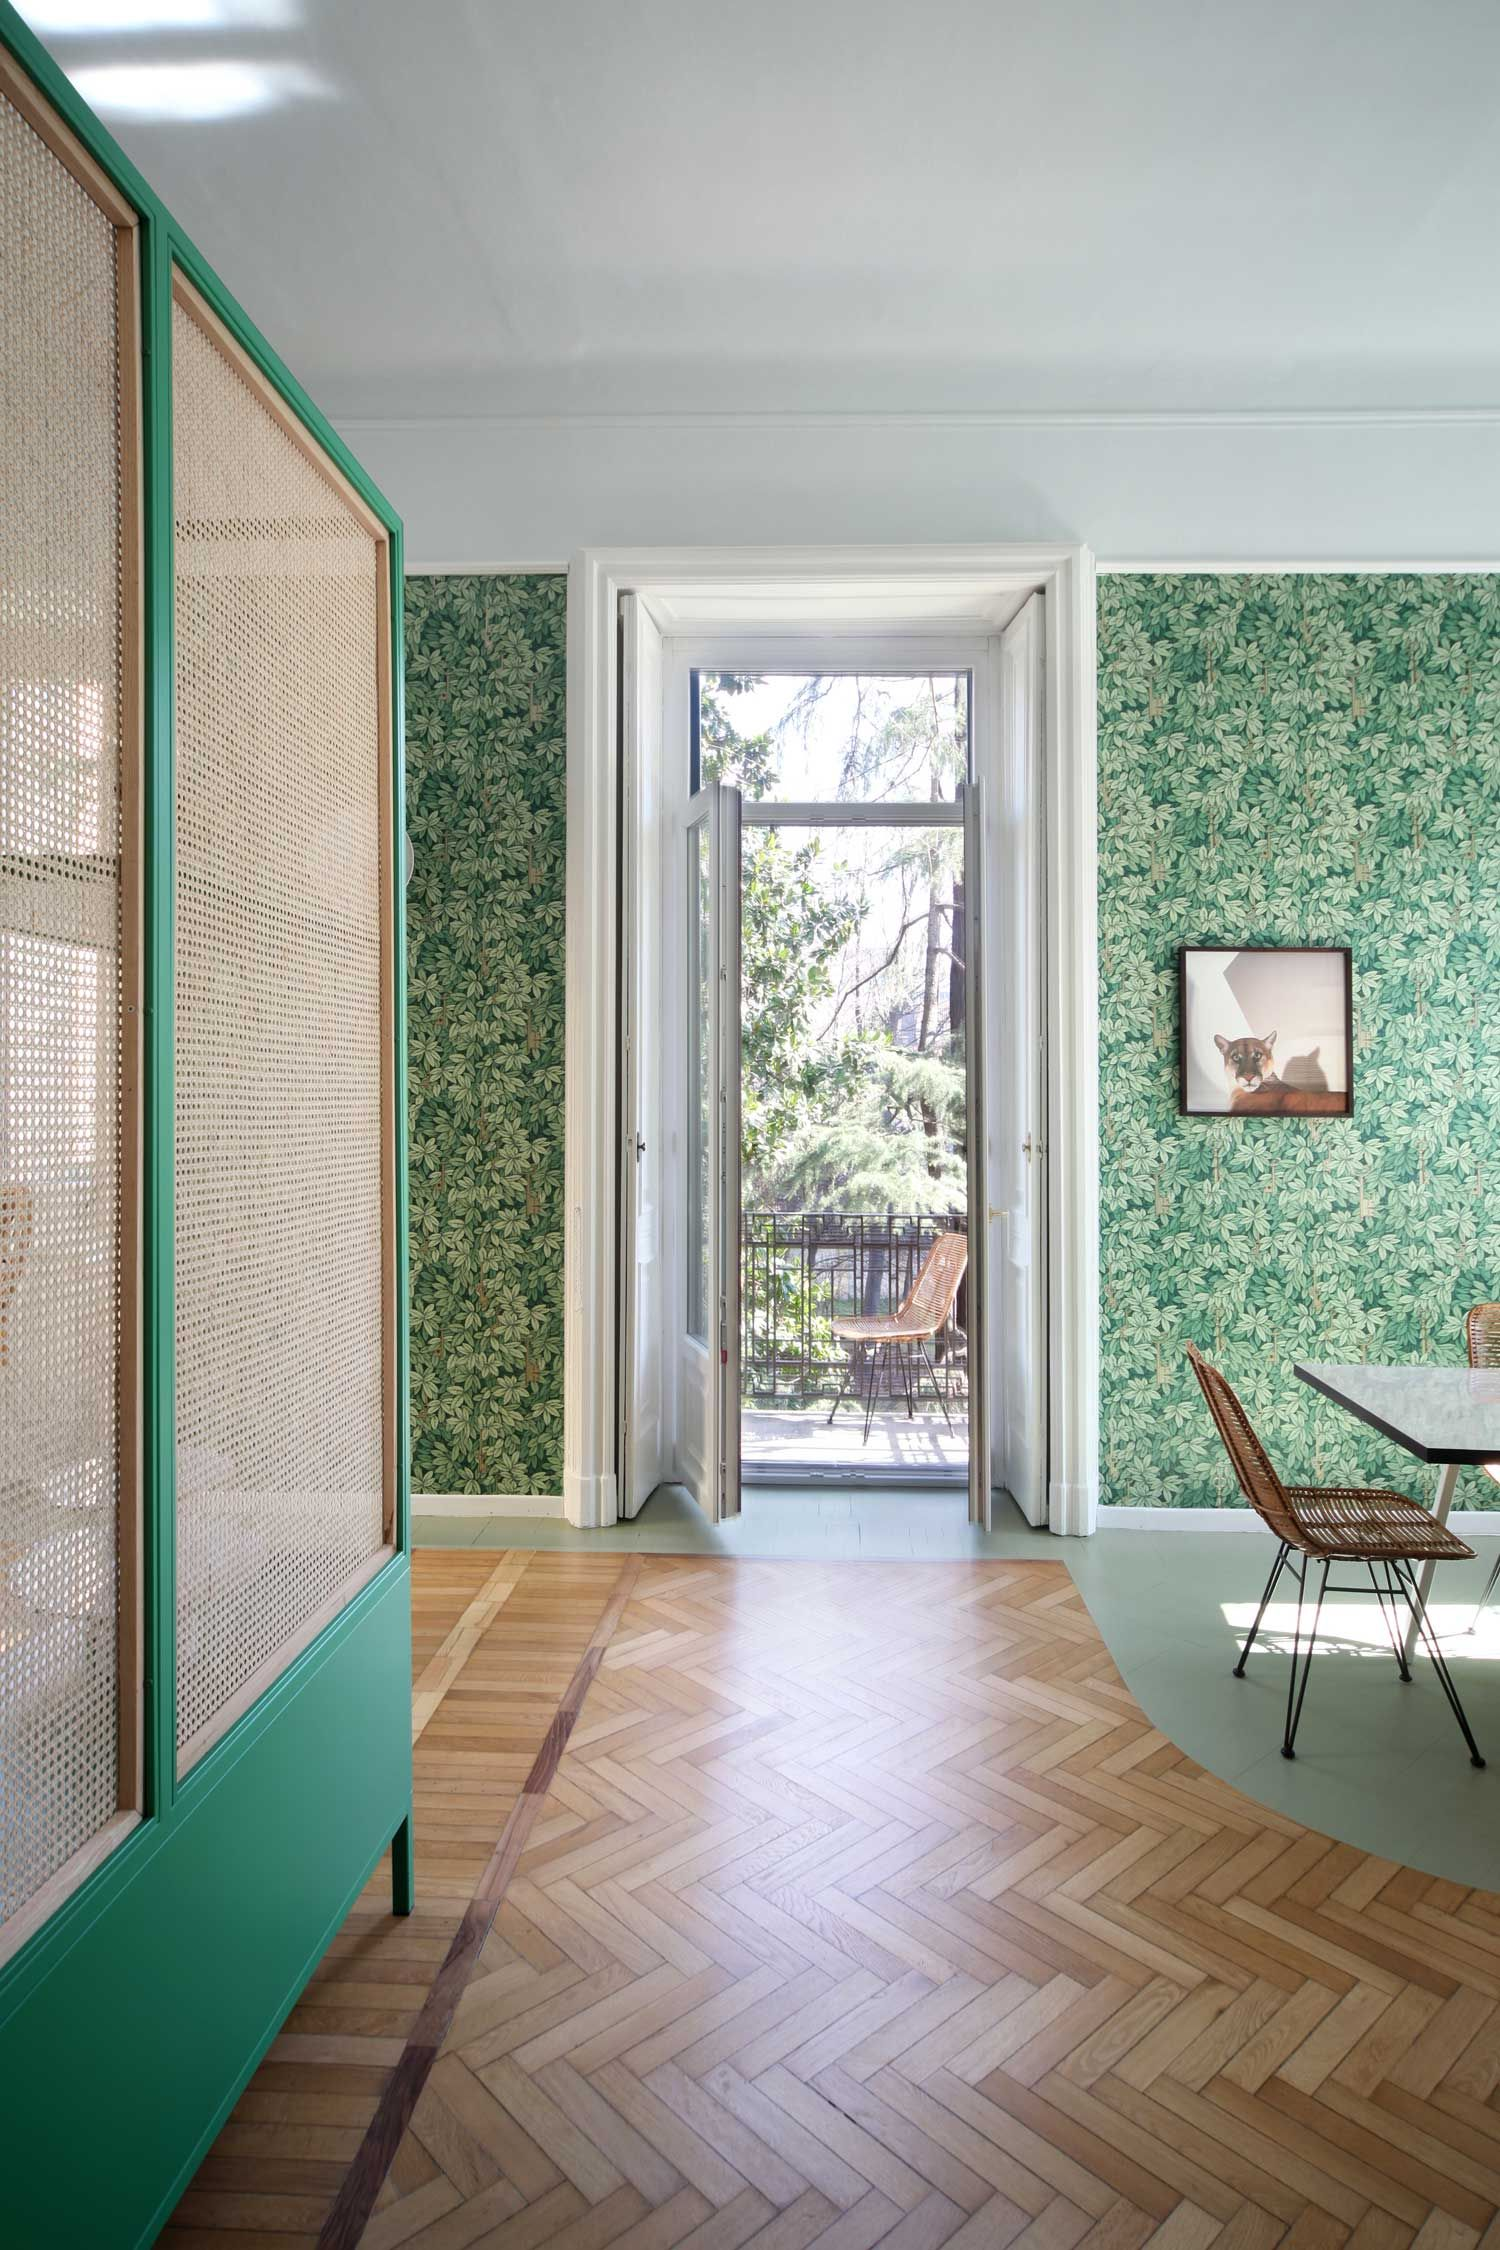 Apartment renovation in milan by marcante testa yellowtrace